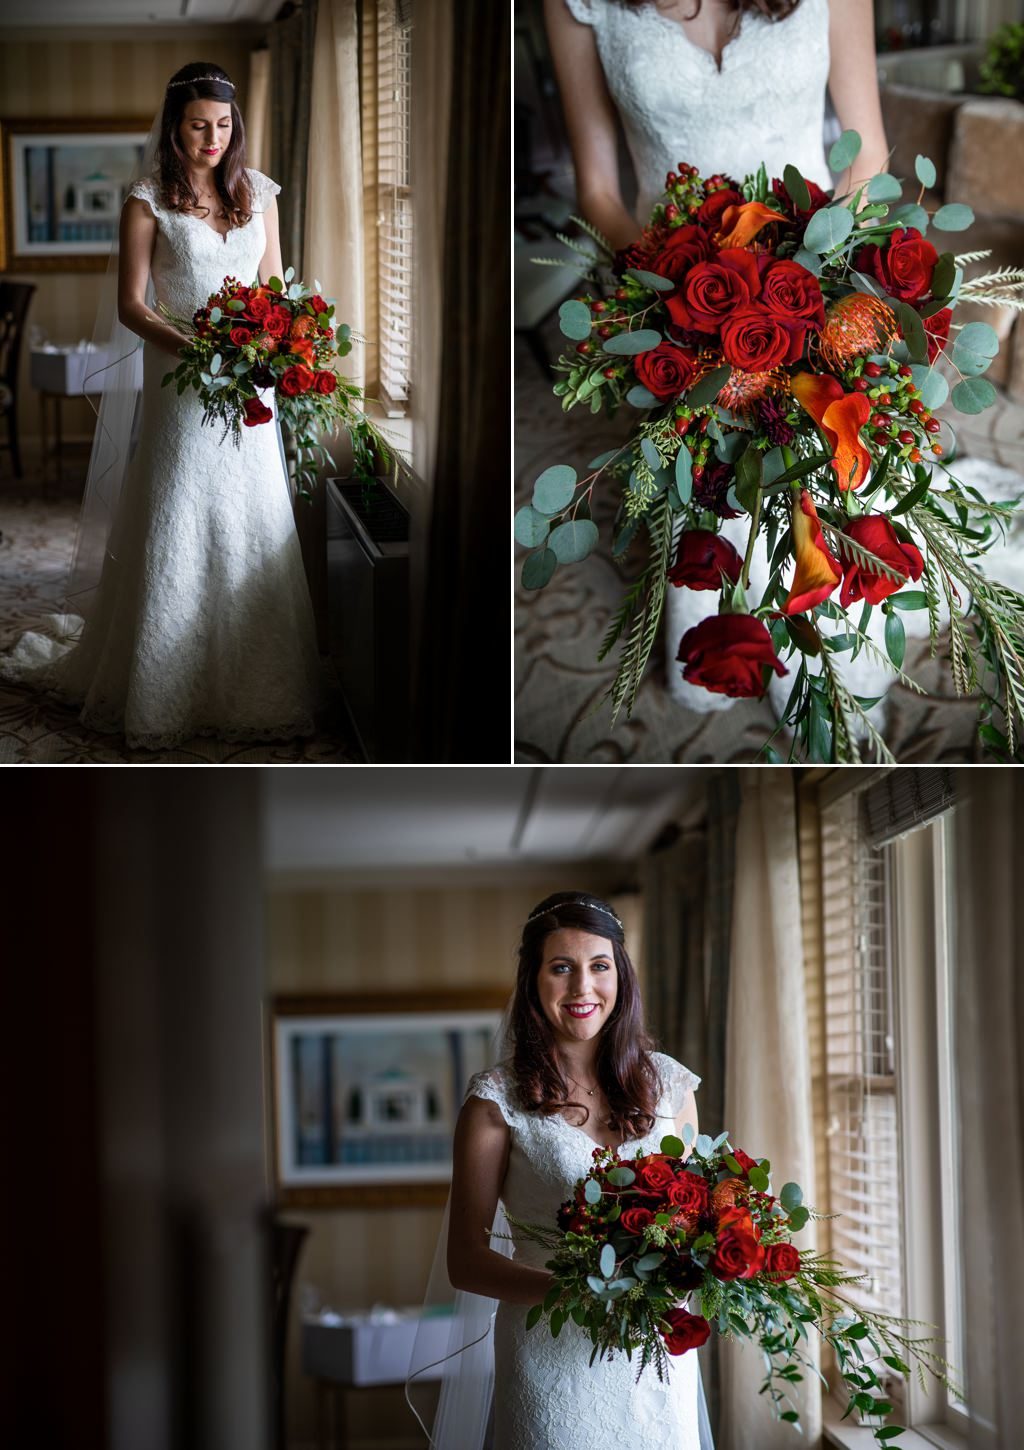 A bride posing by the window for this wedding at The Hotel Hershey